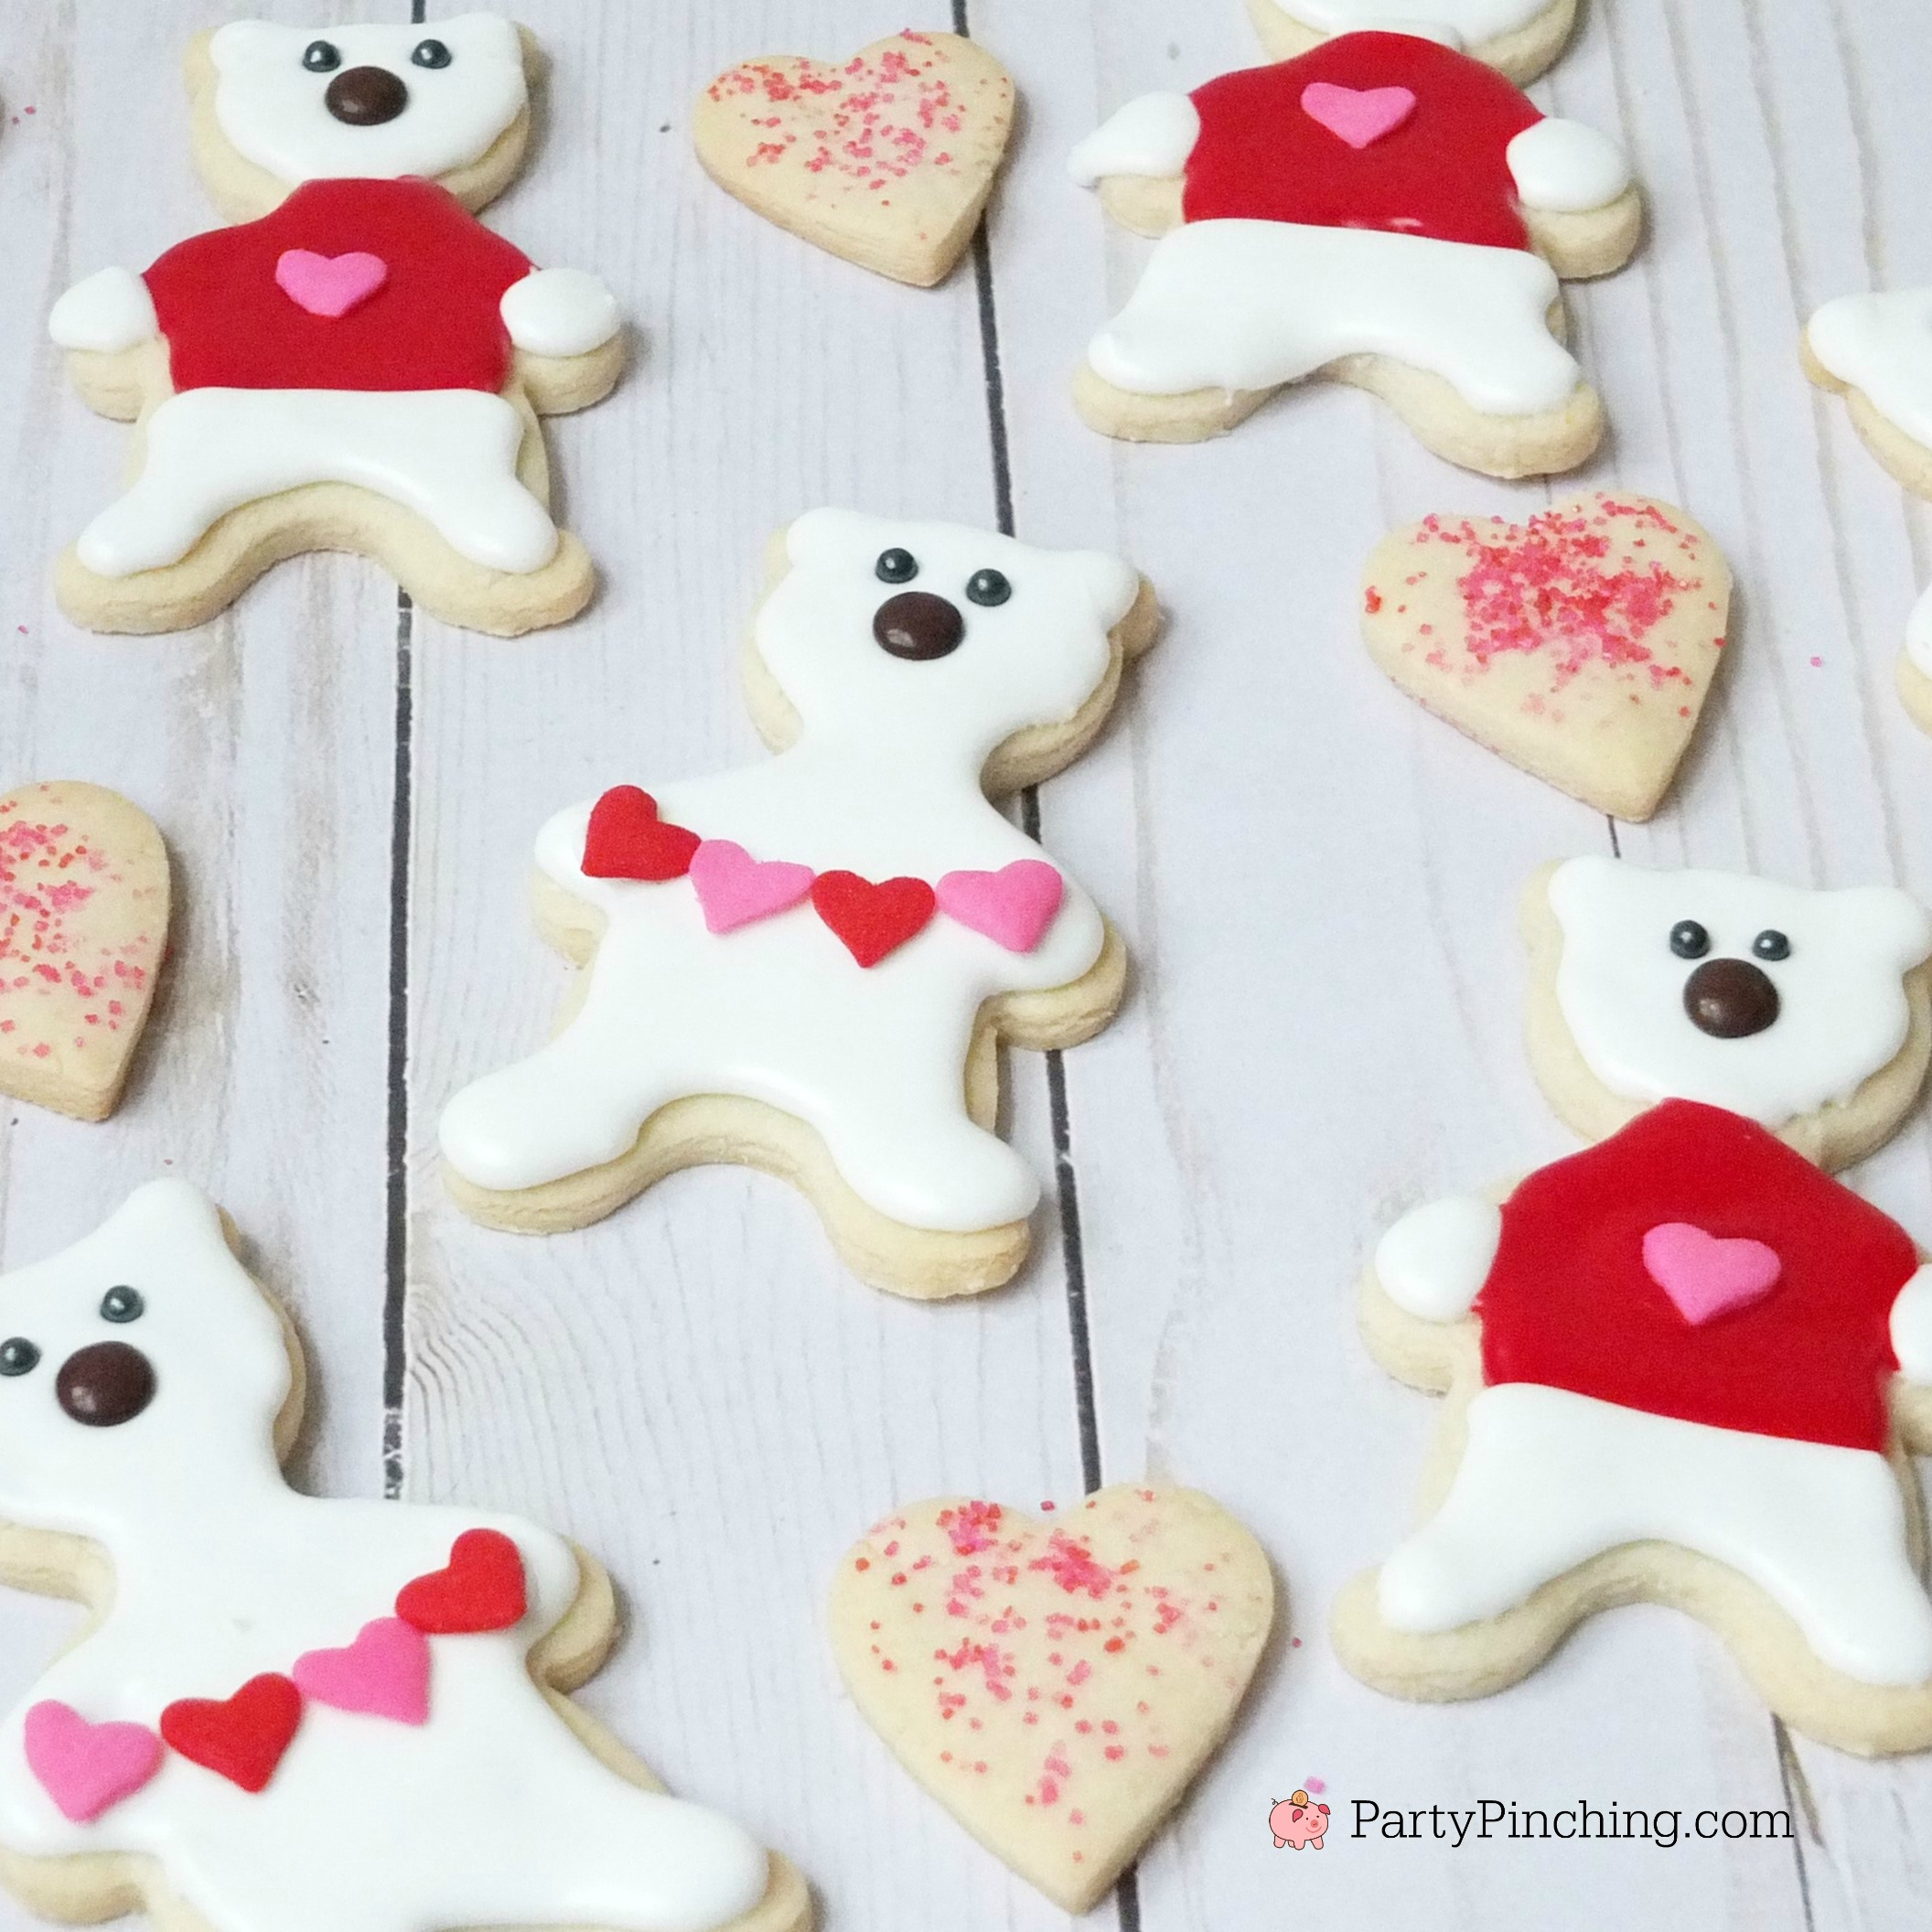 Polar bear cookies, Valentine's Day polar bear cookies, cute cookie ideas for Valentine's Day, polar bear sweater cookie, polar bear heart garland cookie, fun food for kids, cute food ideas, sweet treats